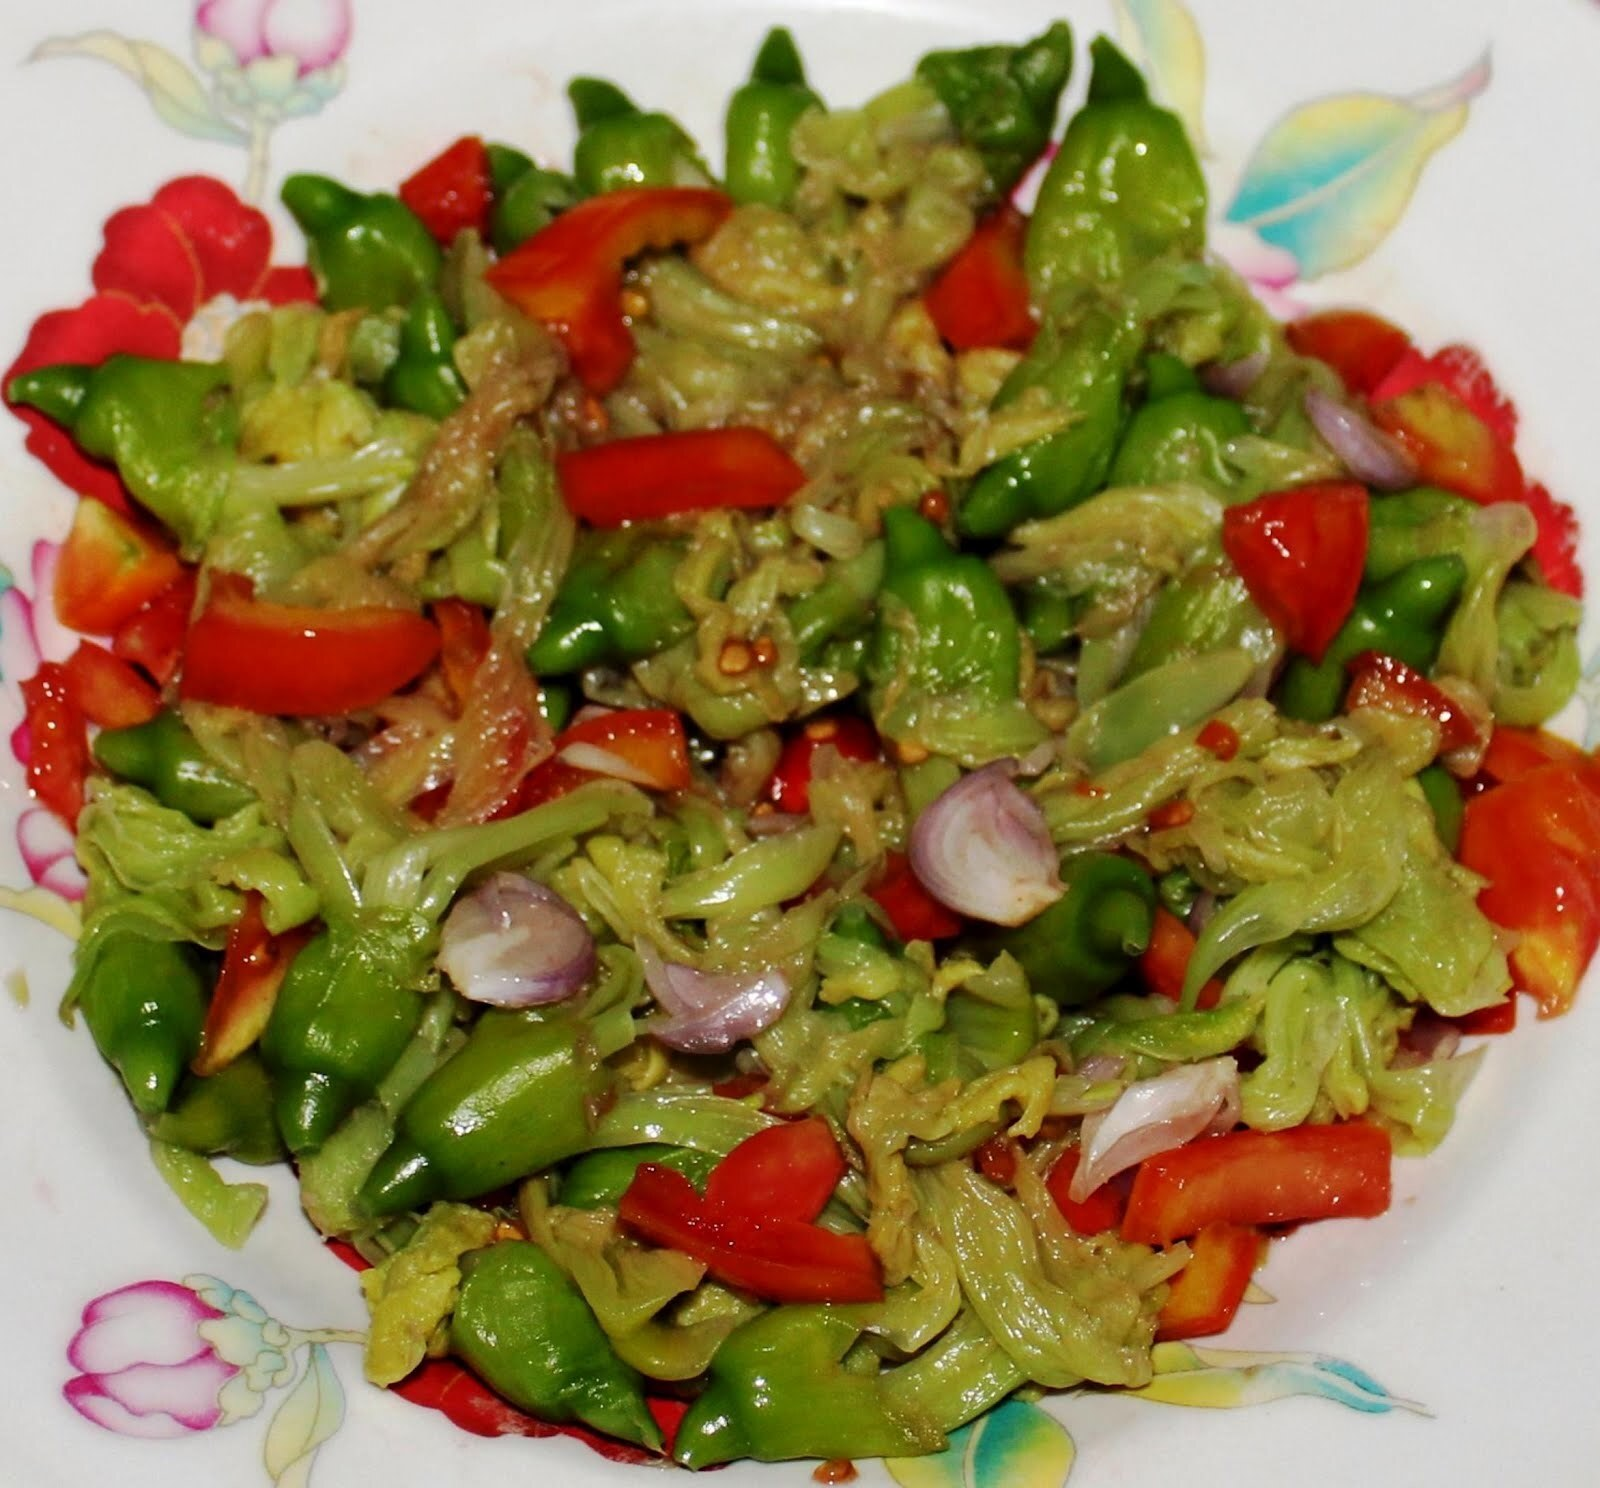 Katuray Flower Salad (Salade Fleur Katuray)